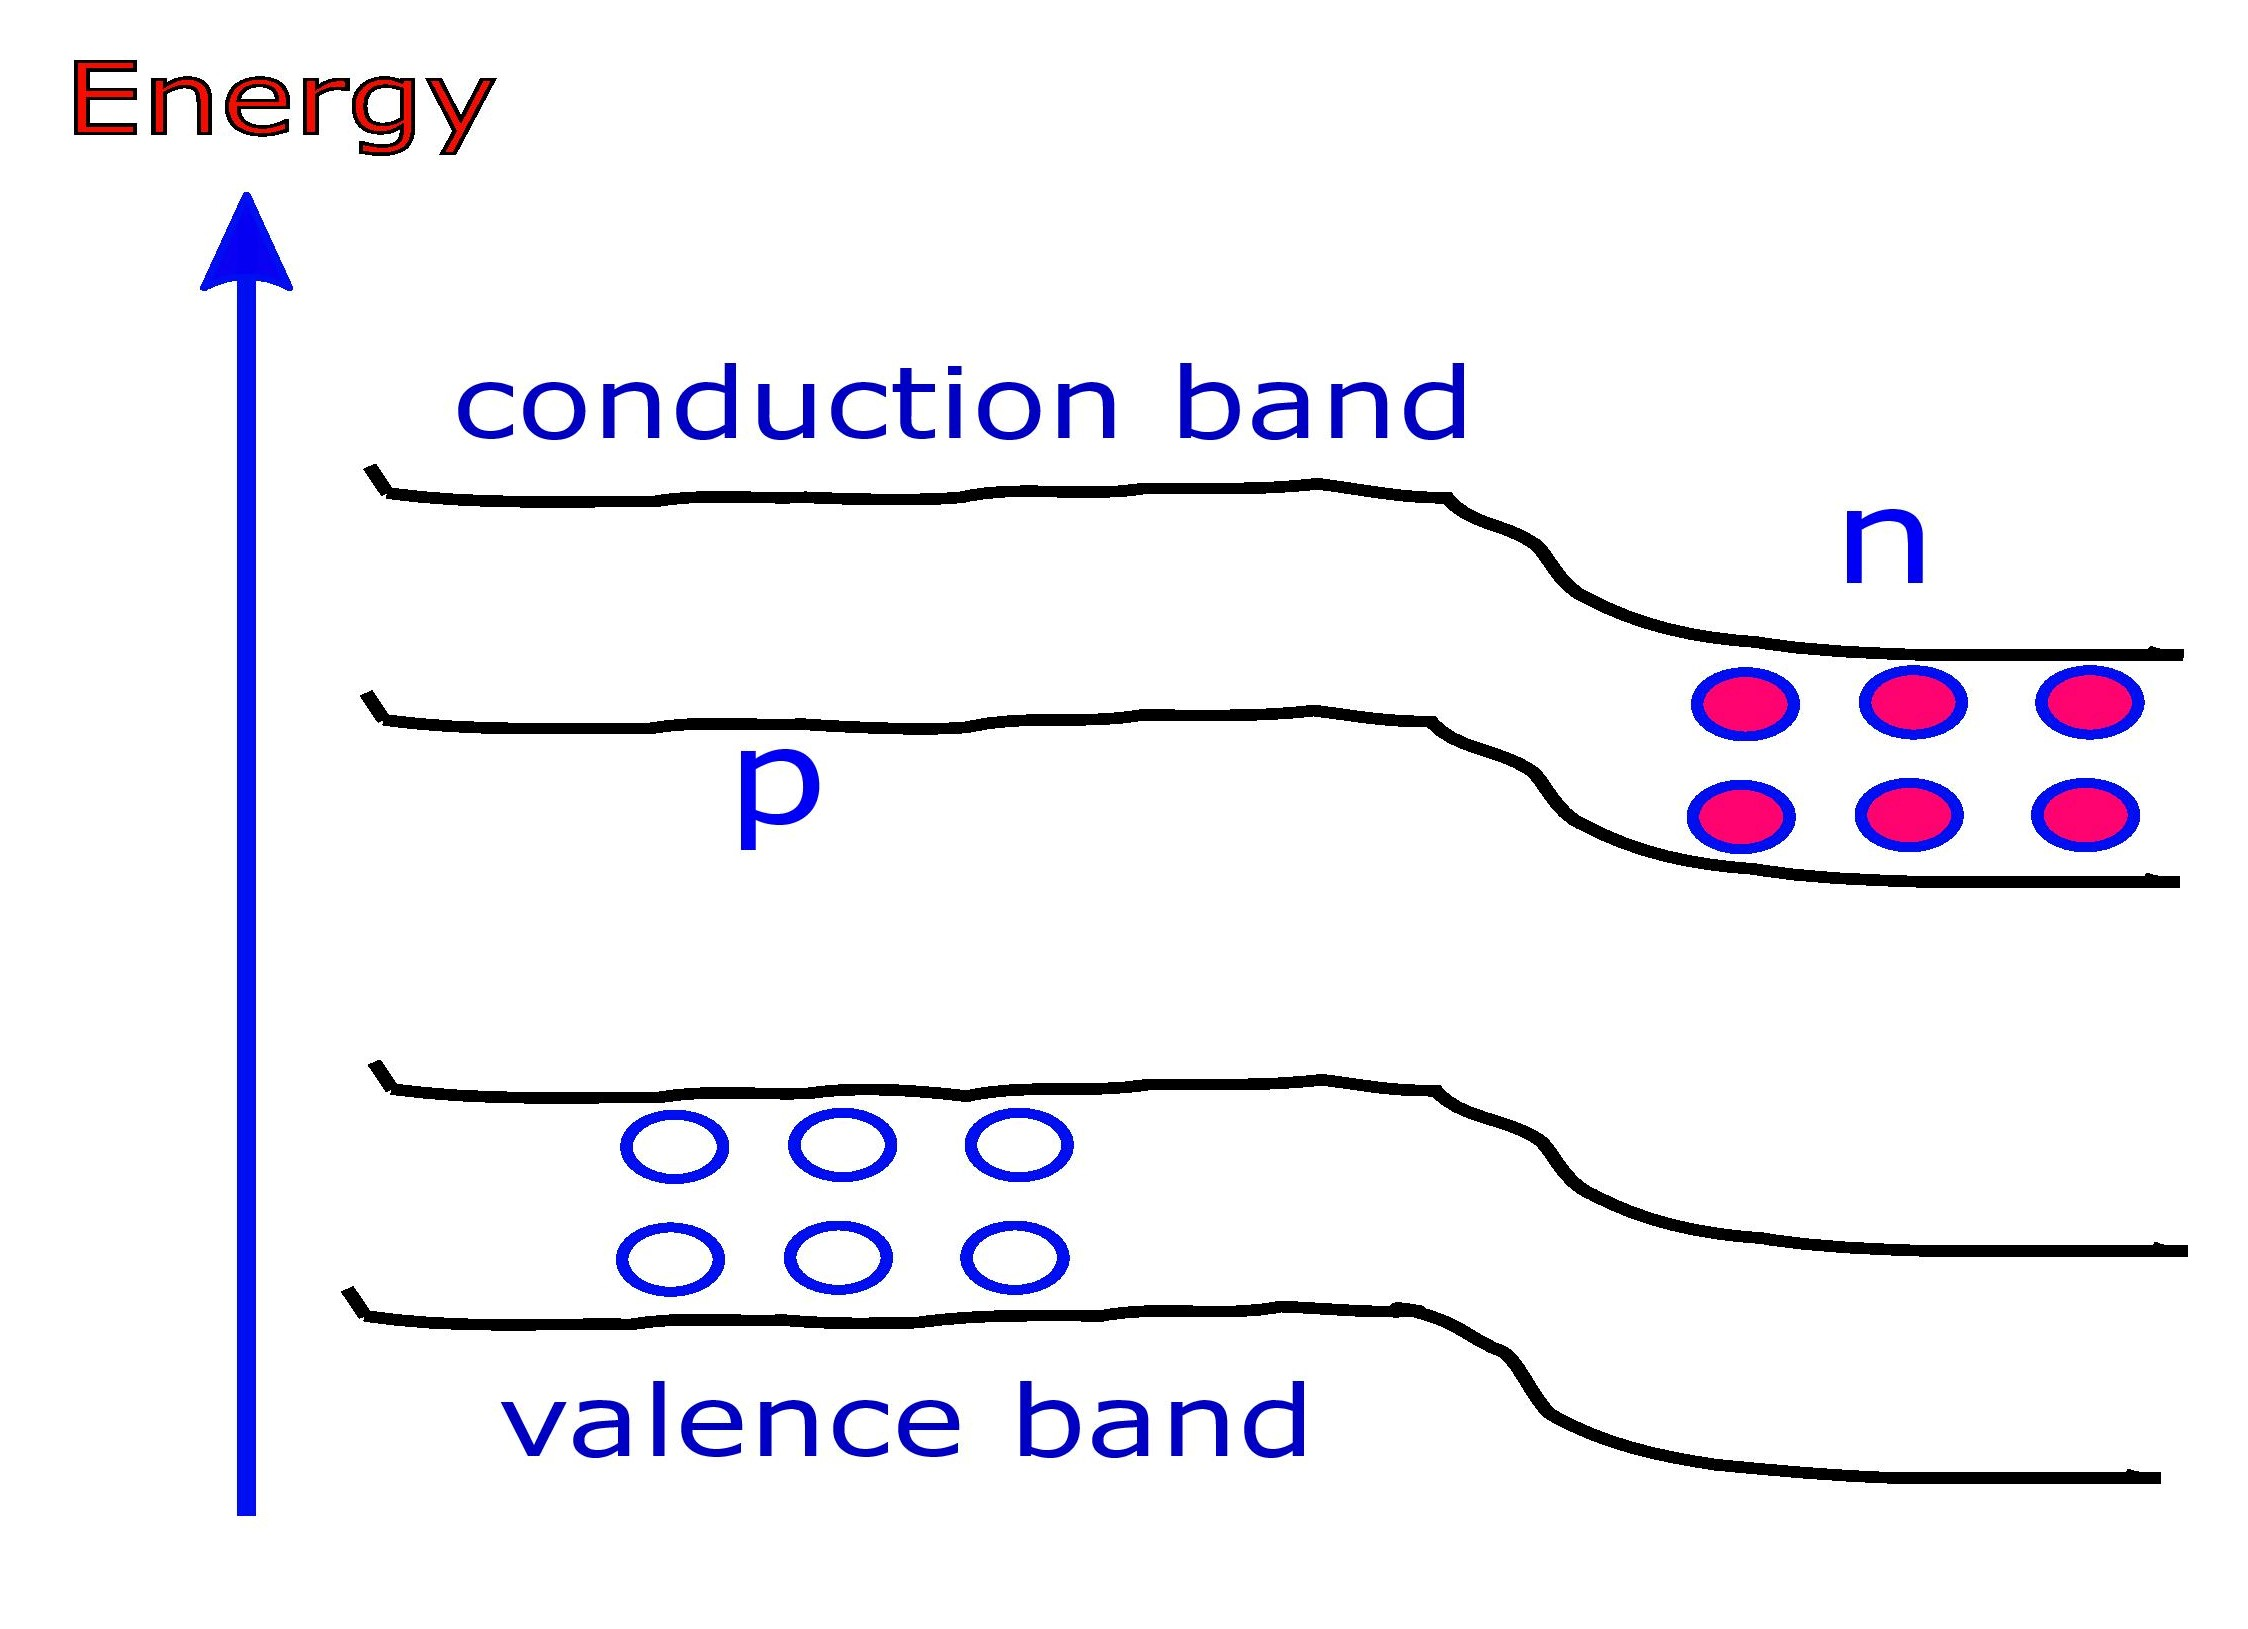 valence band and conduction band before diffusion of electrons takes place from n side to p side..